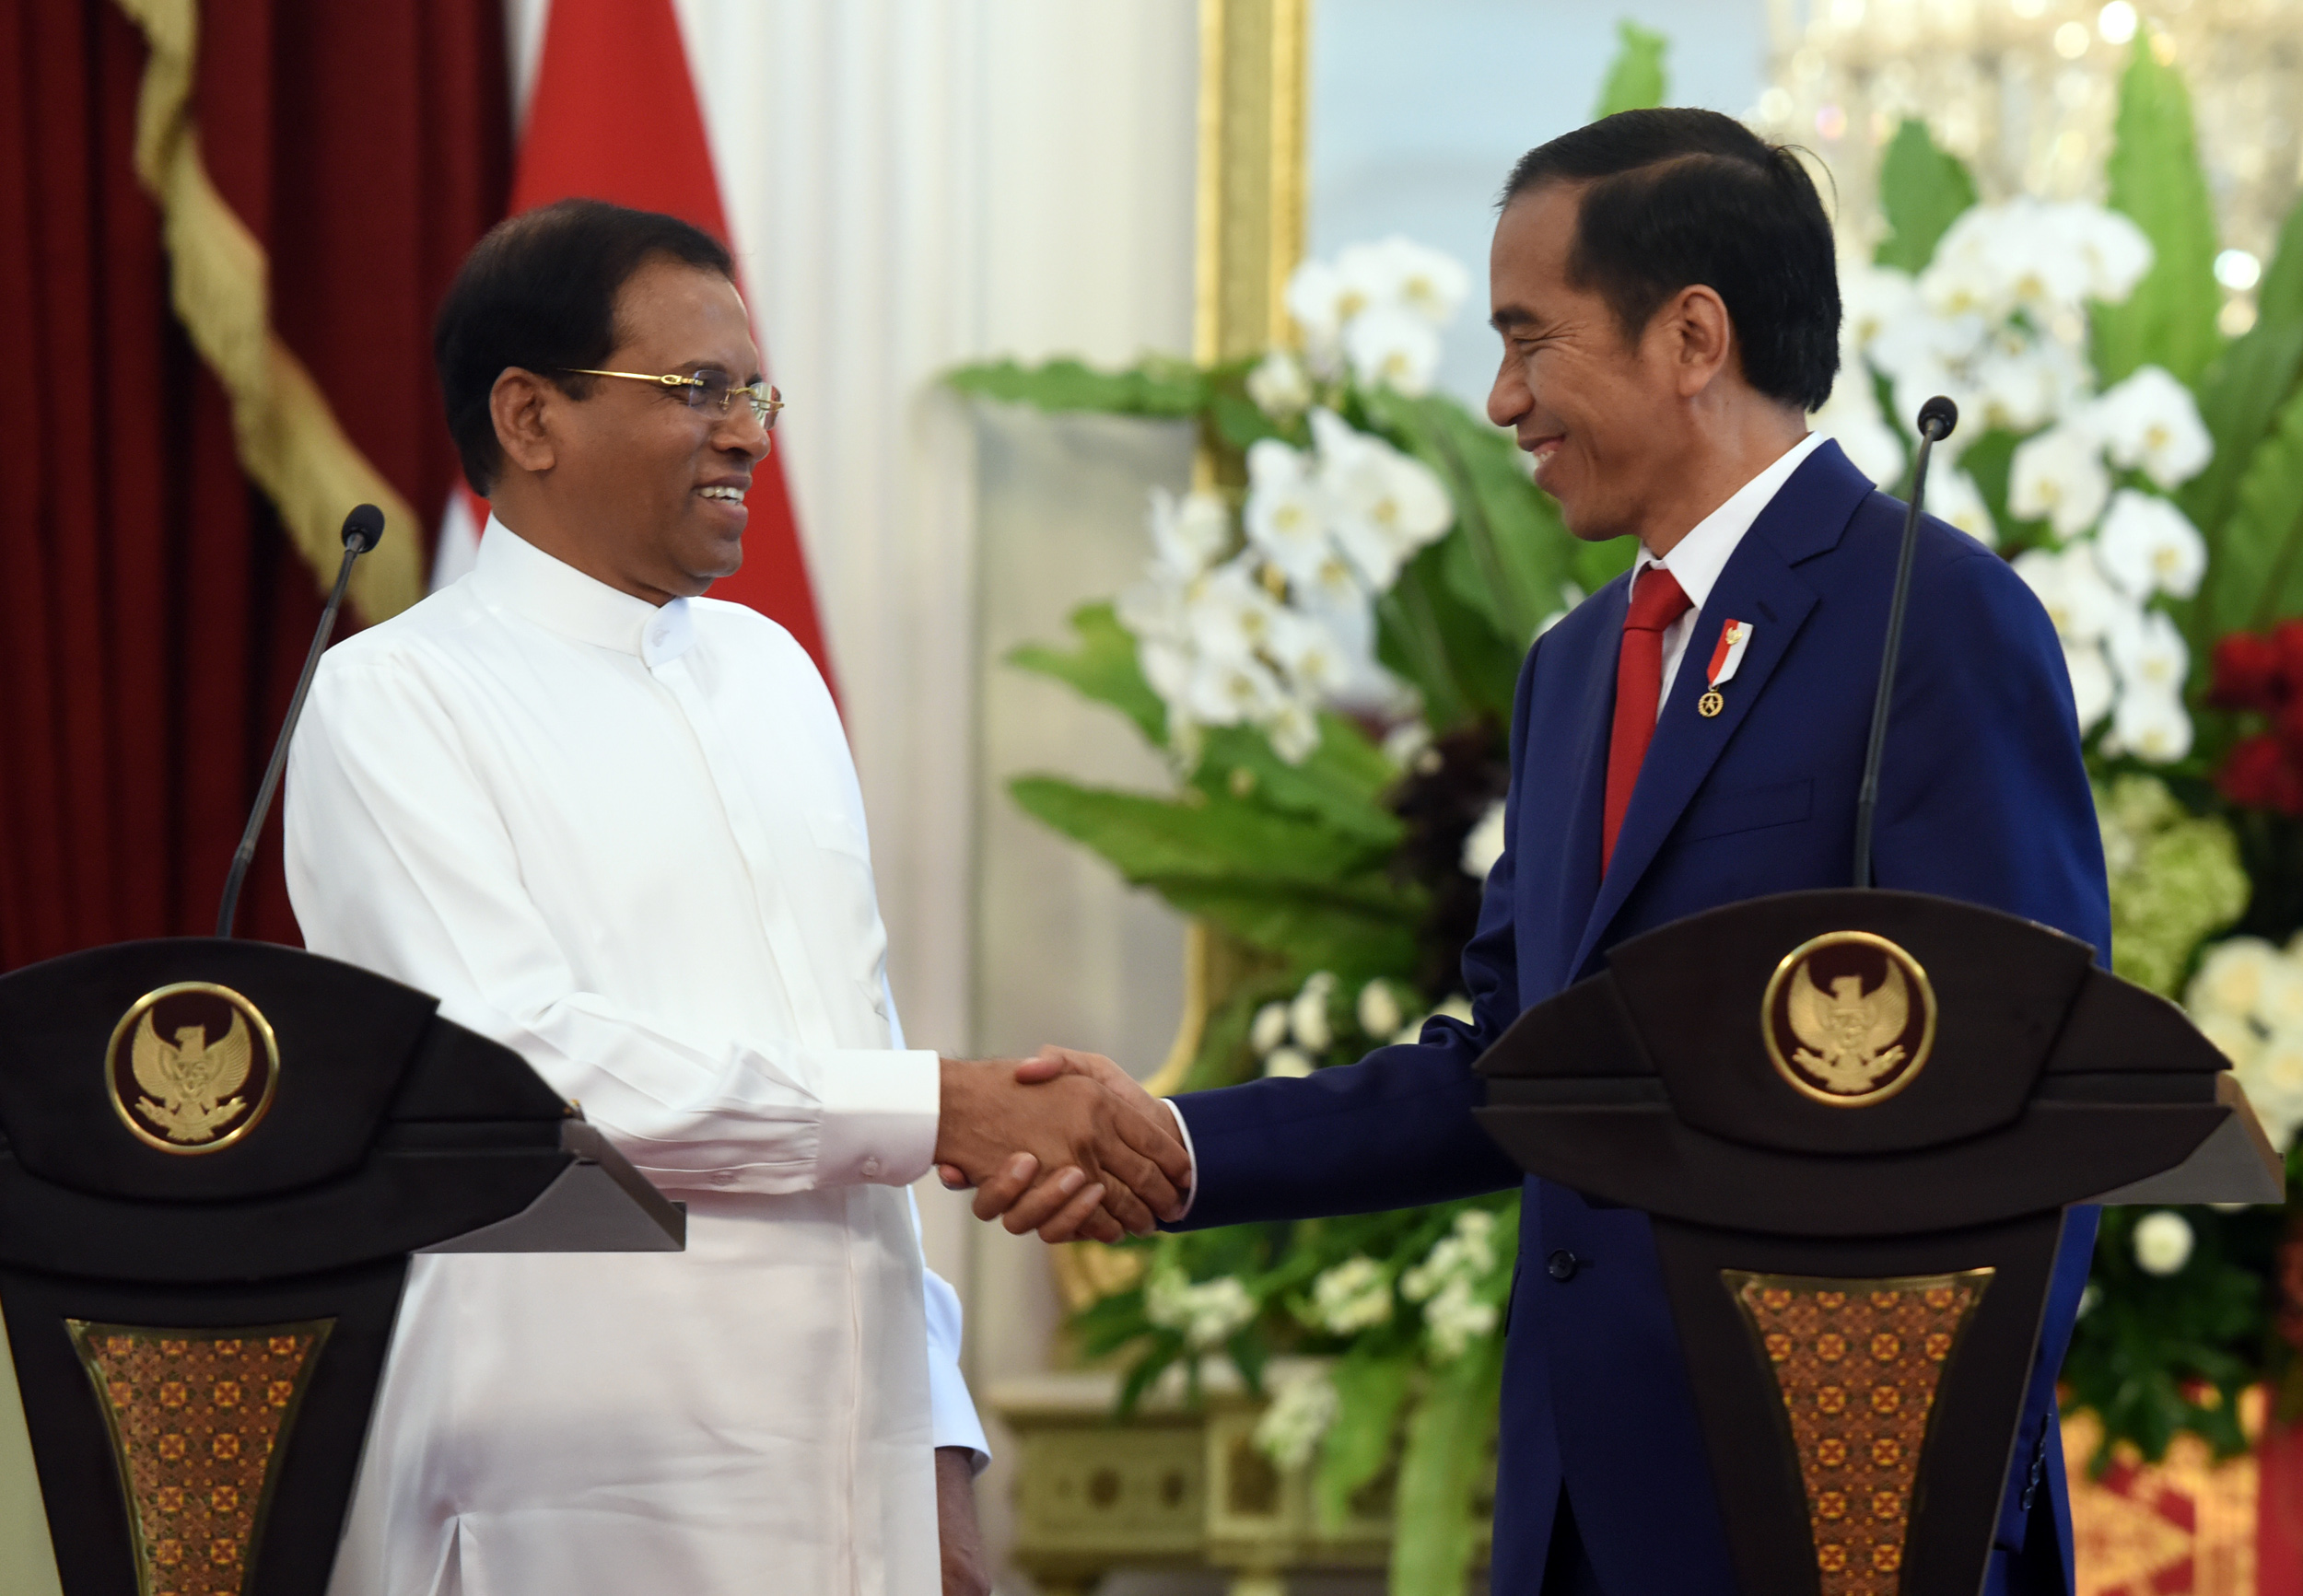 President Jokowi shakes hands with President of Sri Lanka Maithripala Sirisena after a joint press conference at Merdeka Palace, Jakarta, Wednesday (8/3). (Photo by: Rahmat/Public Relations Division)